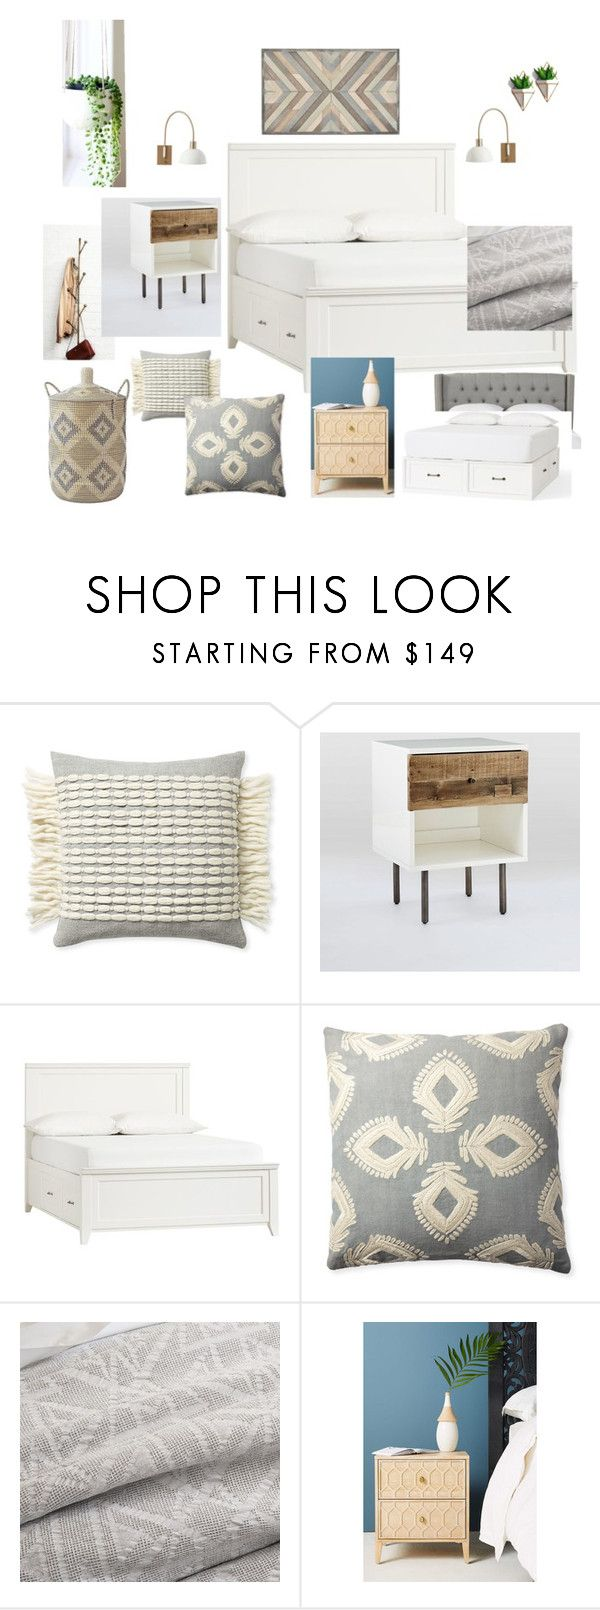 Corte Madera Master Bedroom 1 by noelkvis on Polyvore featuring interior, interiors, interior design, home, home decor, interior decorating, West Elm, Pottery Barn, Serena & Lily and Anthropologie